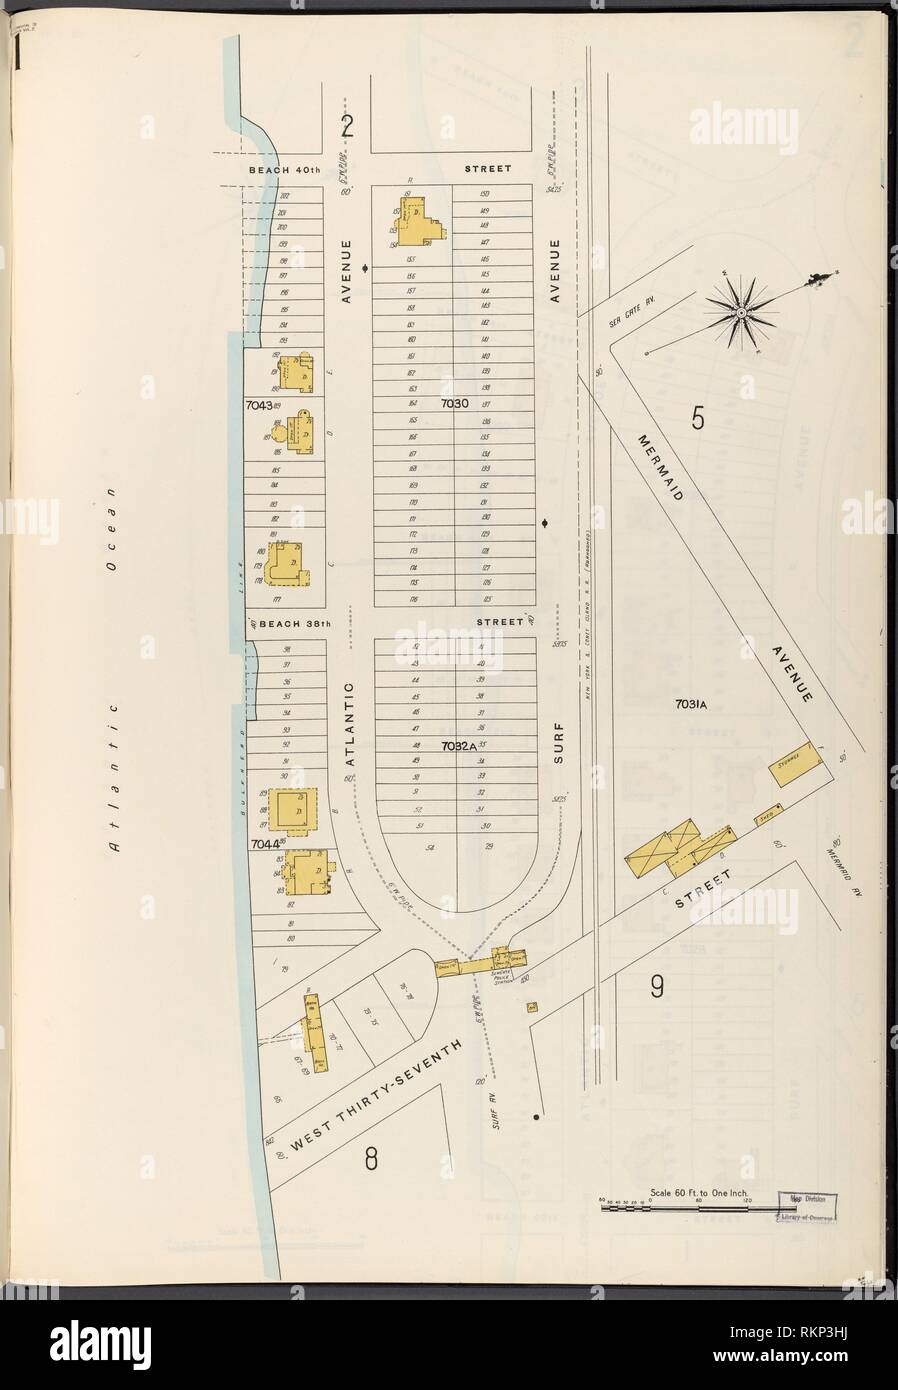 hight resolution of brooklyn vol b plate no 1 map bounded by atlantic ocean 40th